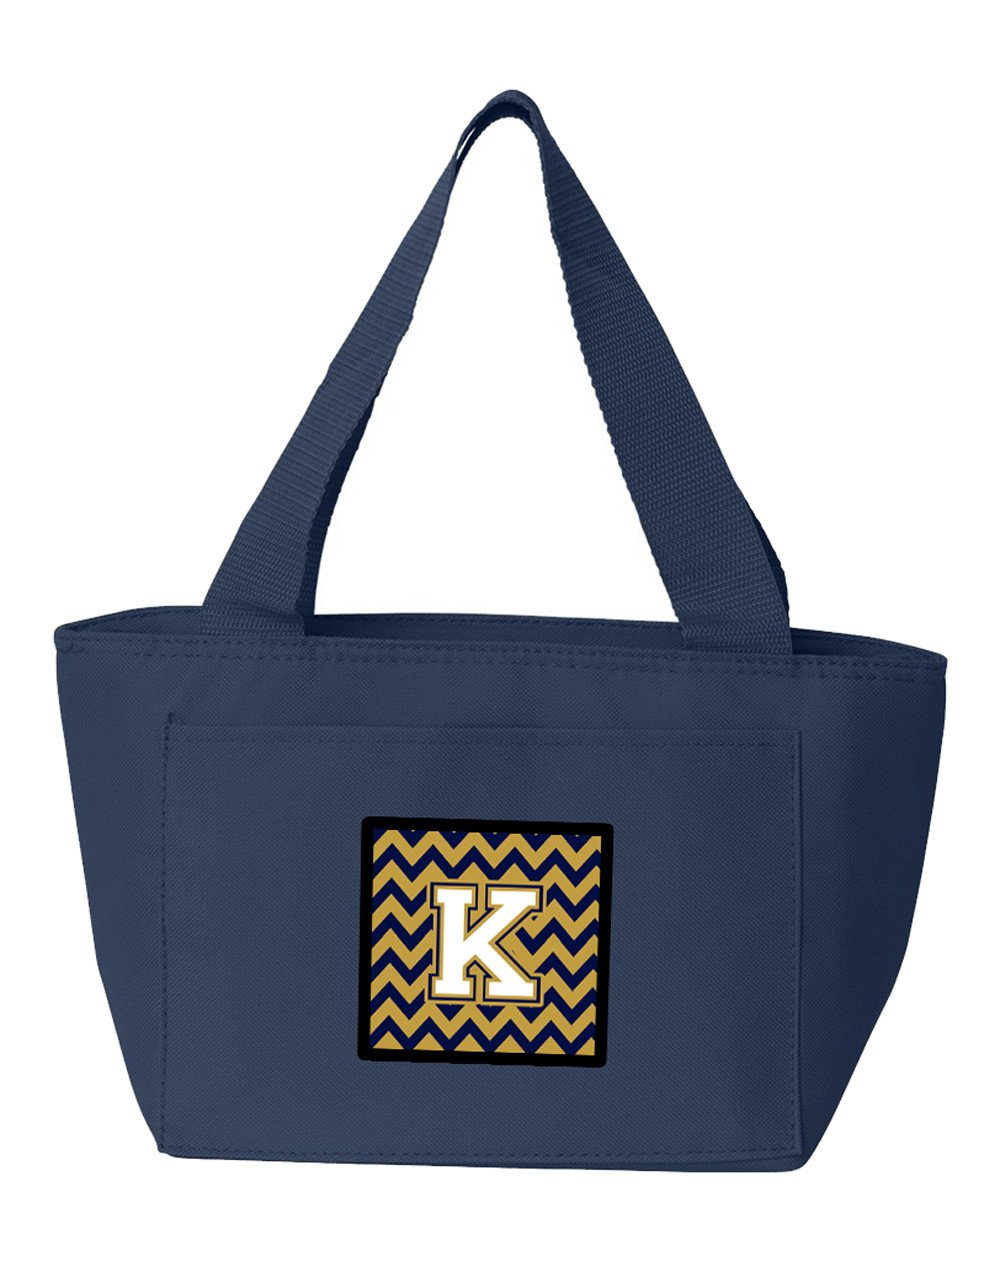 Letter K Chevron Navy Blue and Gold Lunch Bag CJ1057-KNA-8808 by Caroline's Treasures